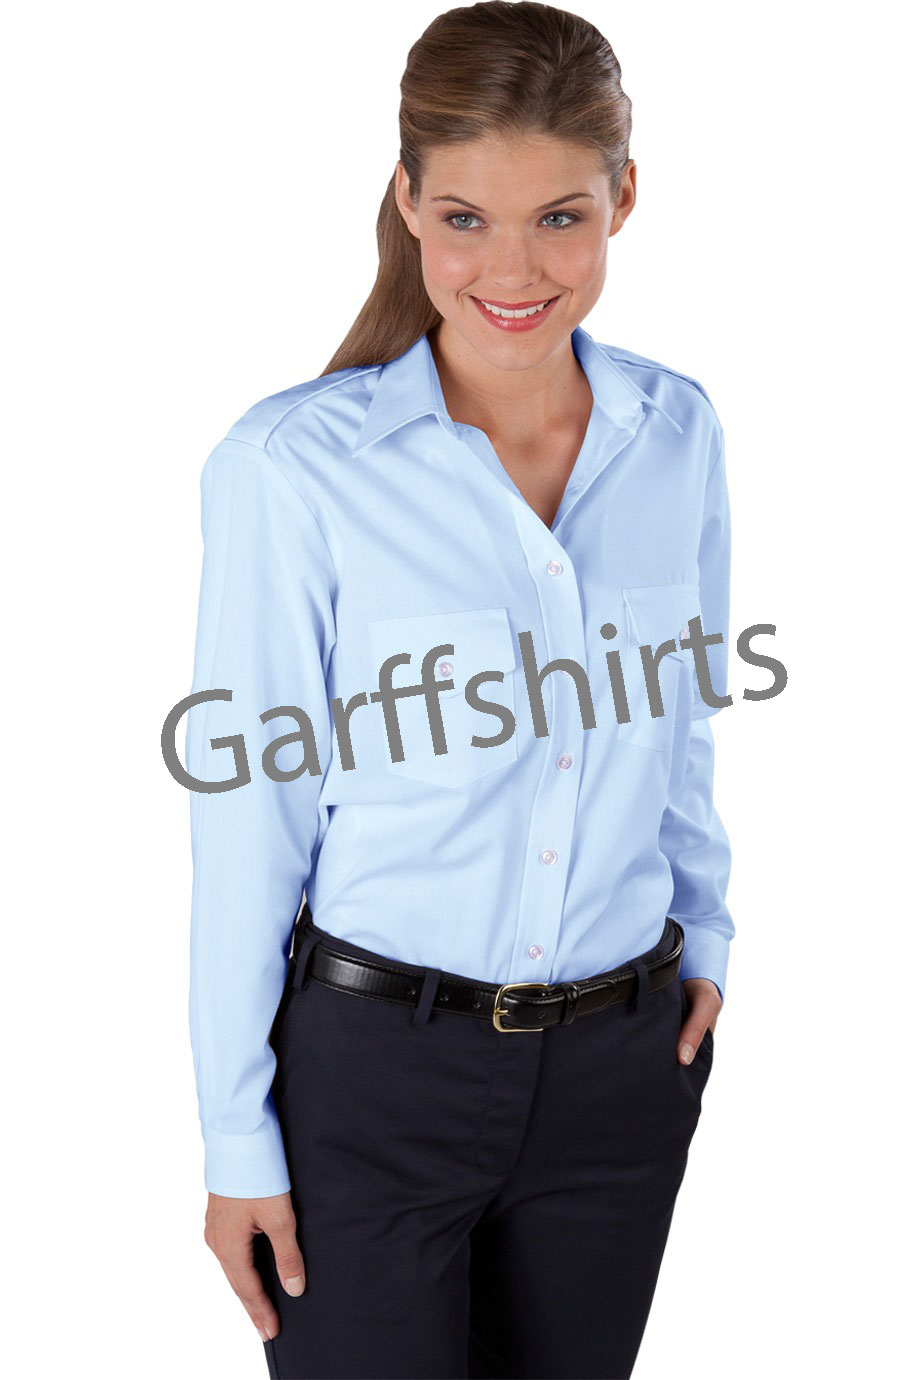 Edwards Men's and Womens Uniform Shirts - Navigator Shirts, Pilot Uniform Shirts, Maritime Shirts